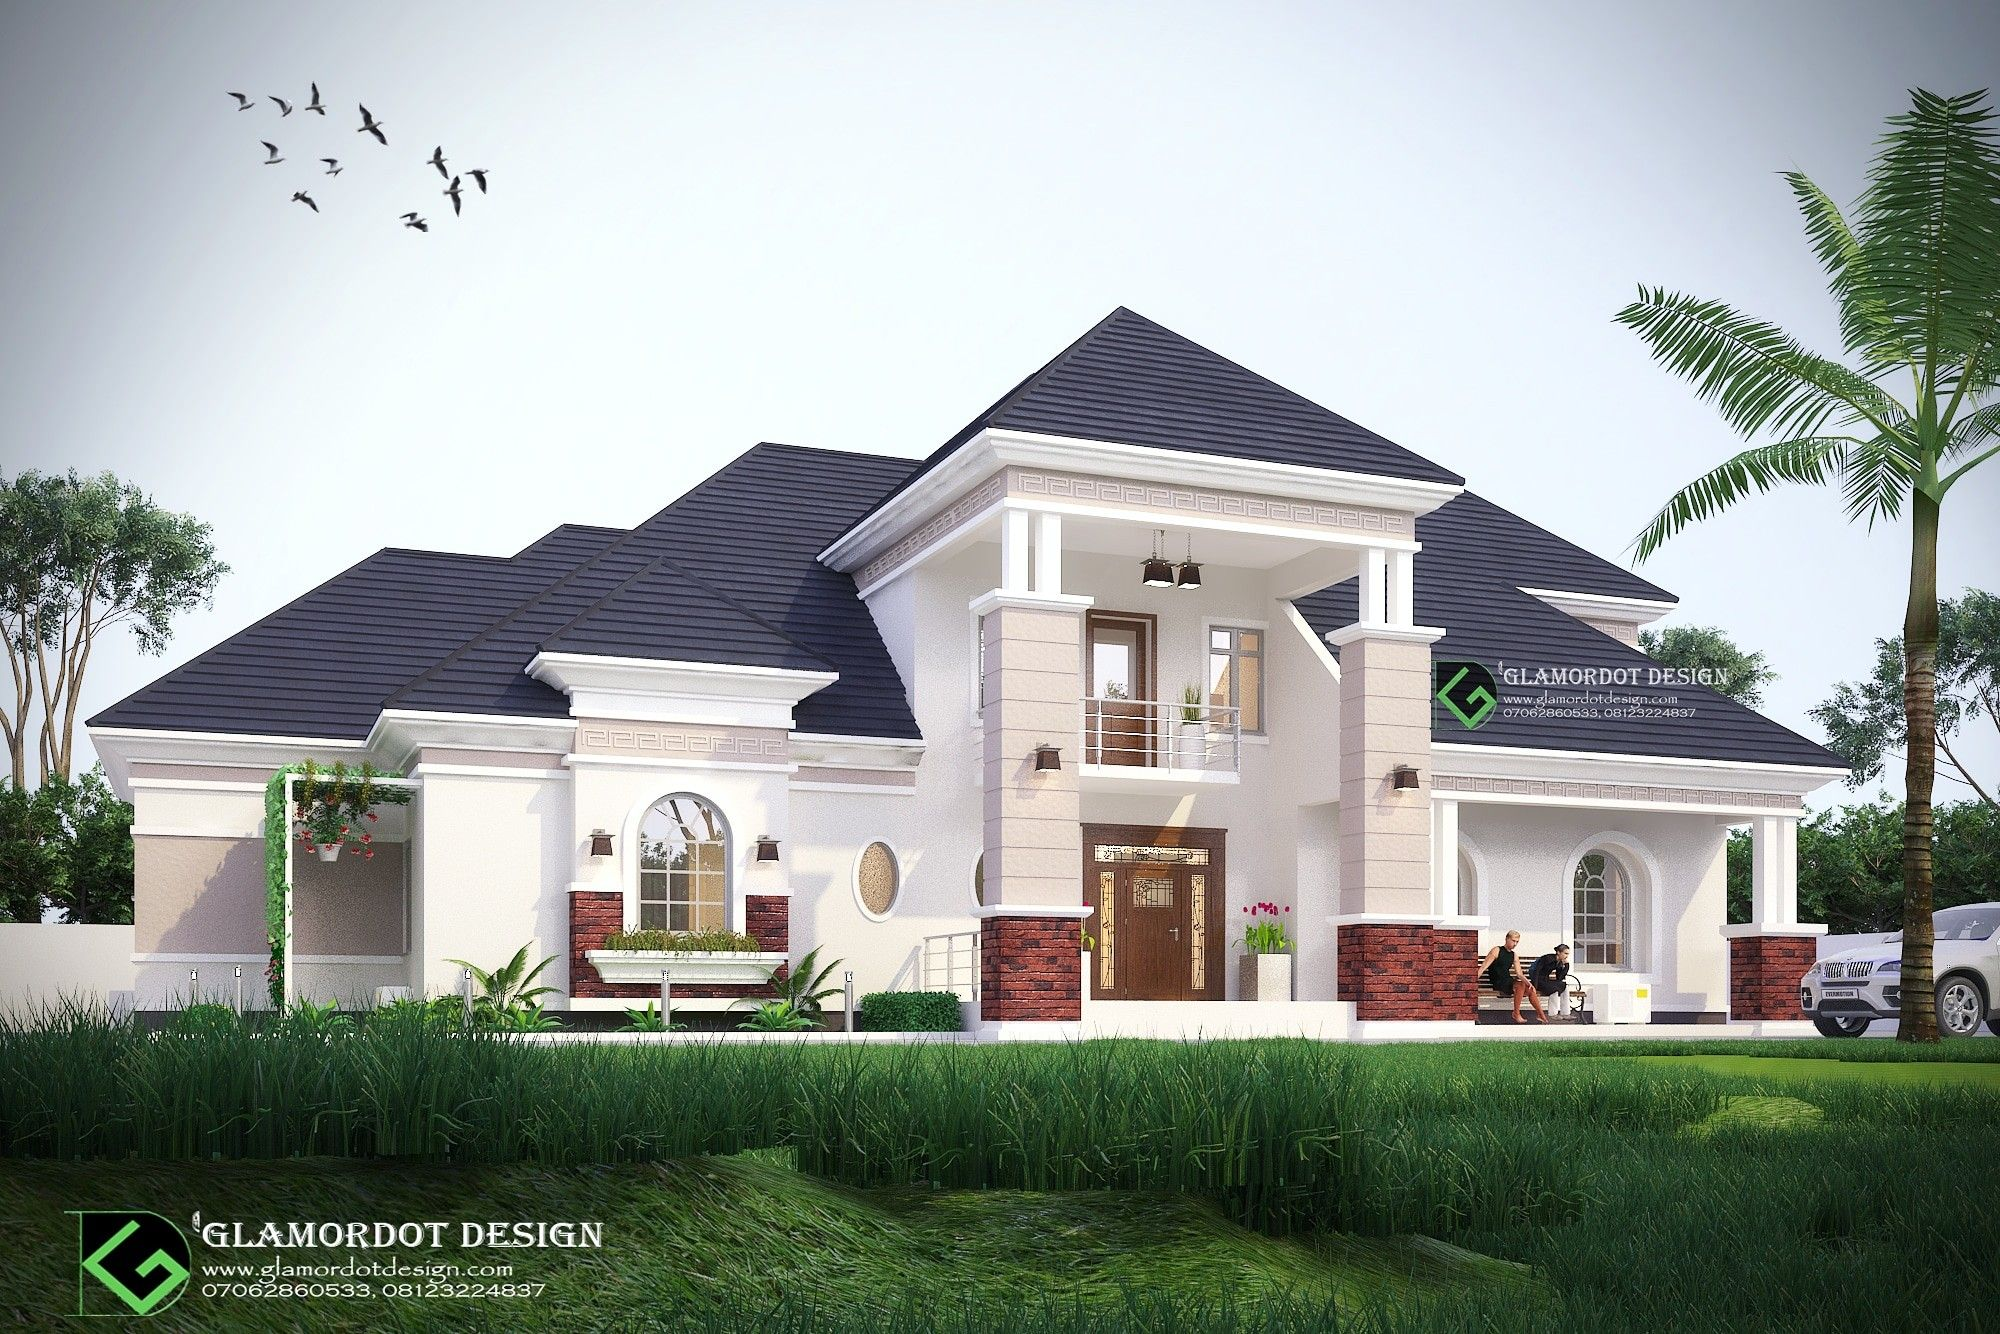 Modified Architectural Design Of A Proposed 5 Bedroom Bungalow With Pent House Abuja Nigeria Build Bungalow Design House Plans Mansion Beautiful House Plans